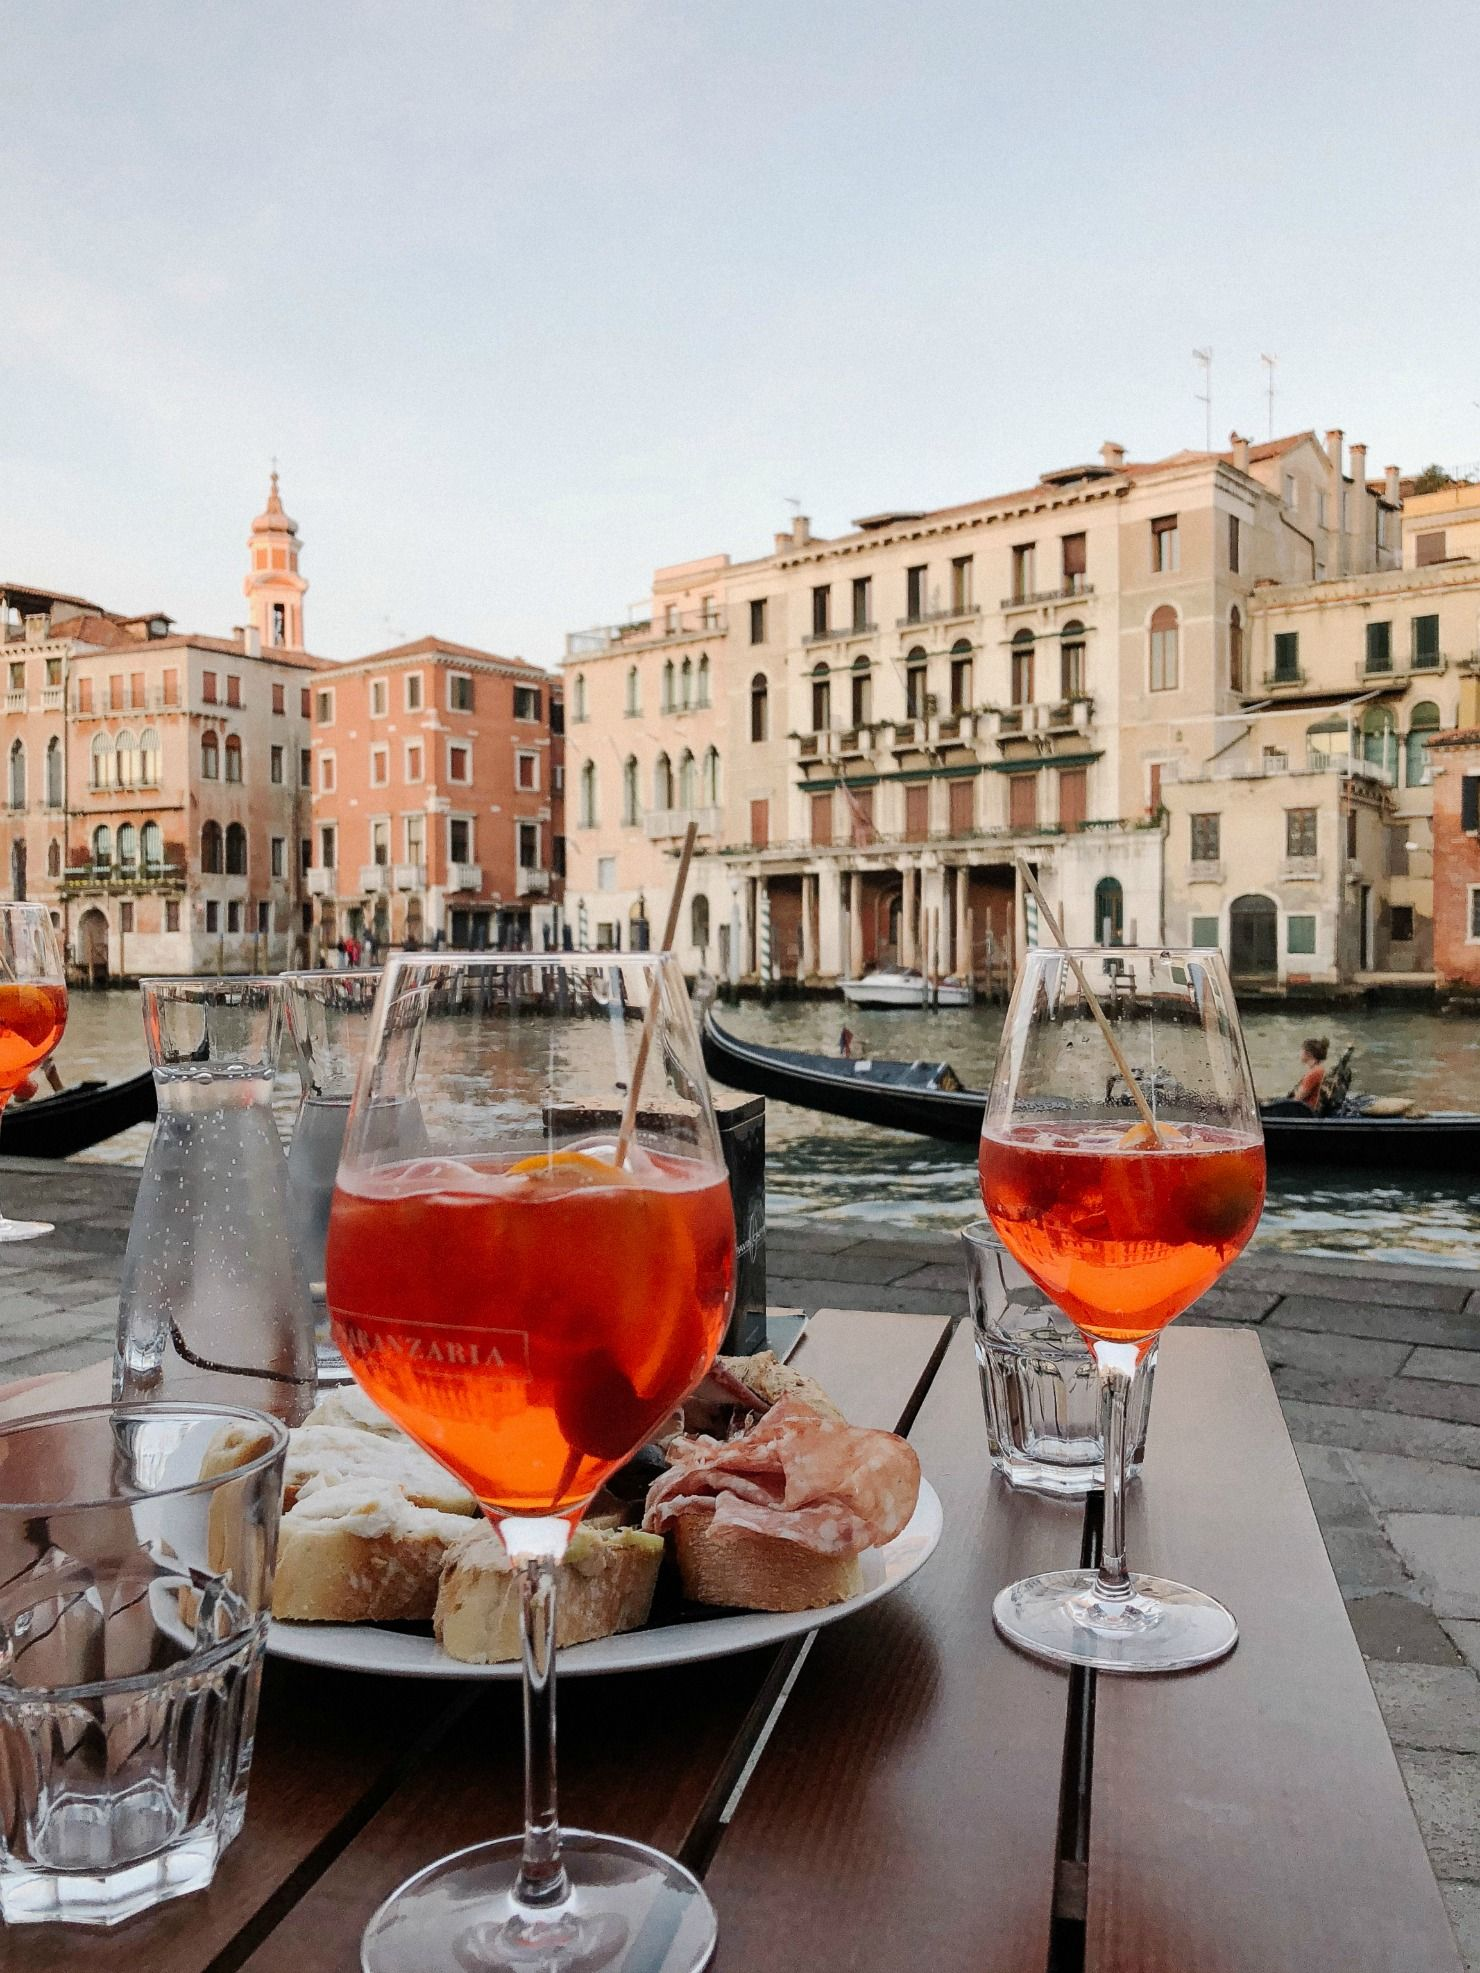 Aperol Spritz and cicchetti on the banks of the Grand Canal in Venice |  Venice italy food, Venice italy travel, Italy food